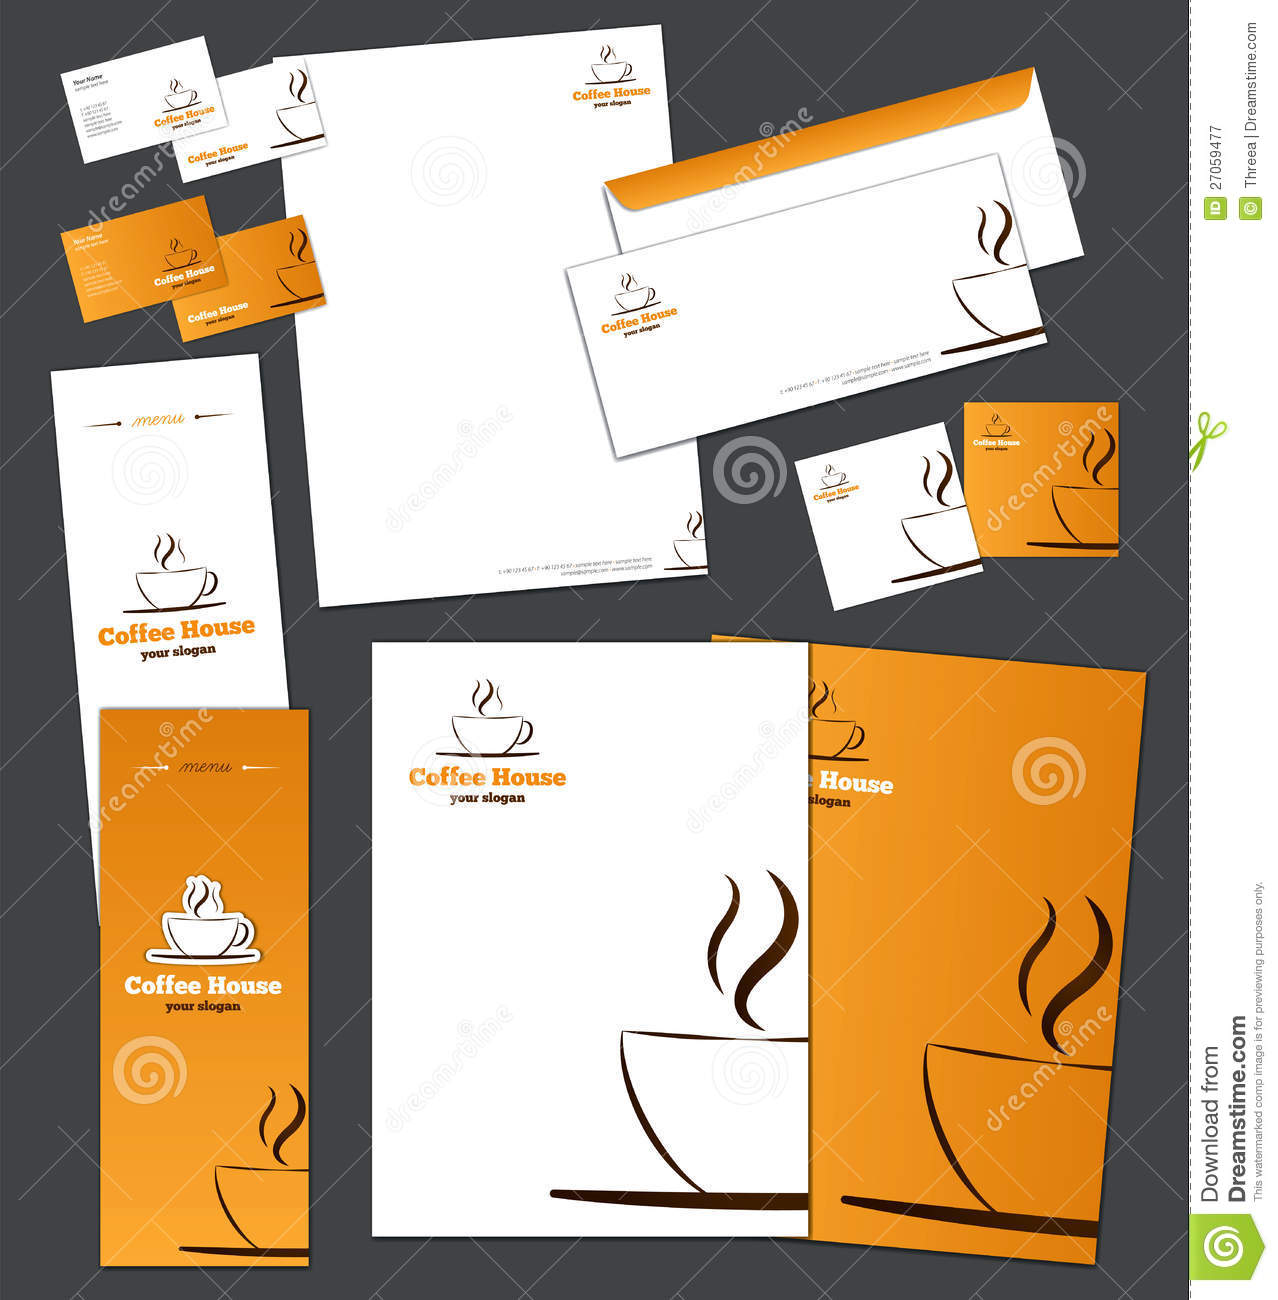 corporate identity template stock vector - image: 27059477, Powerpoint templates